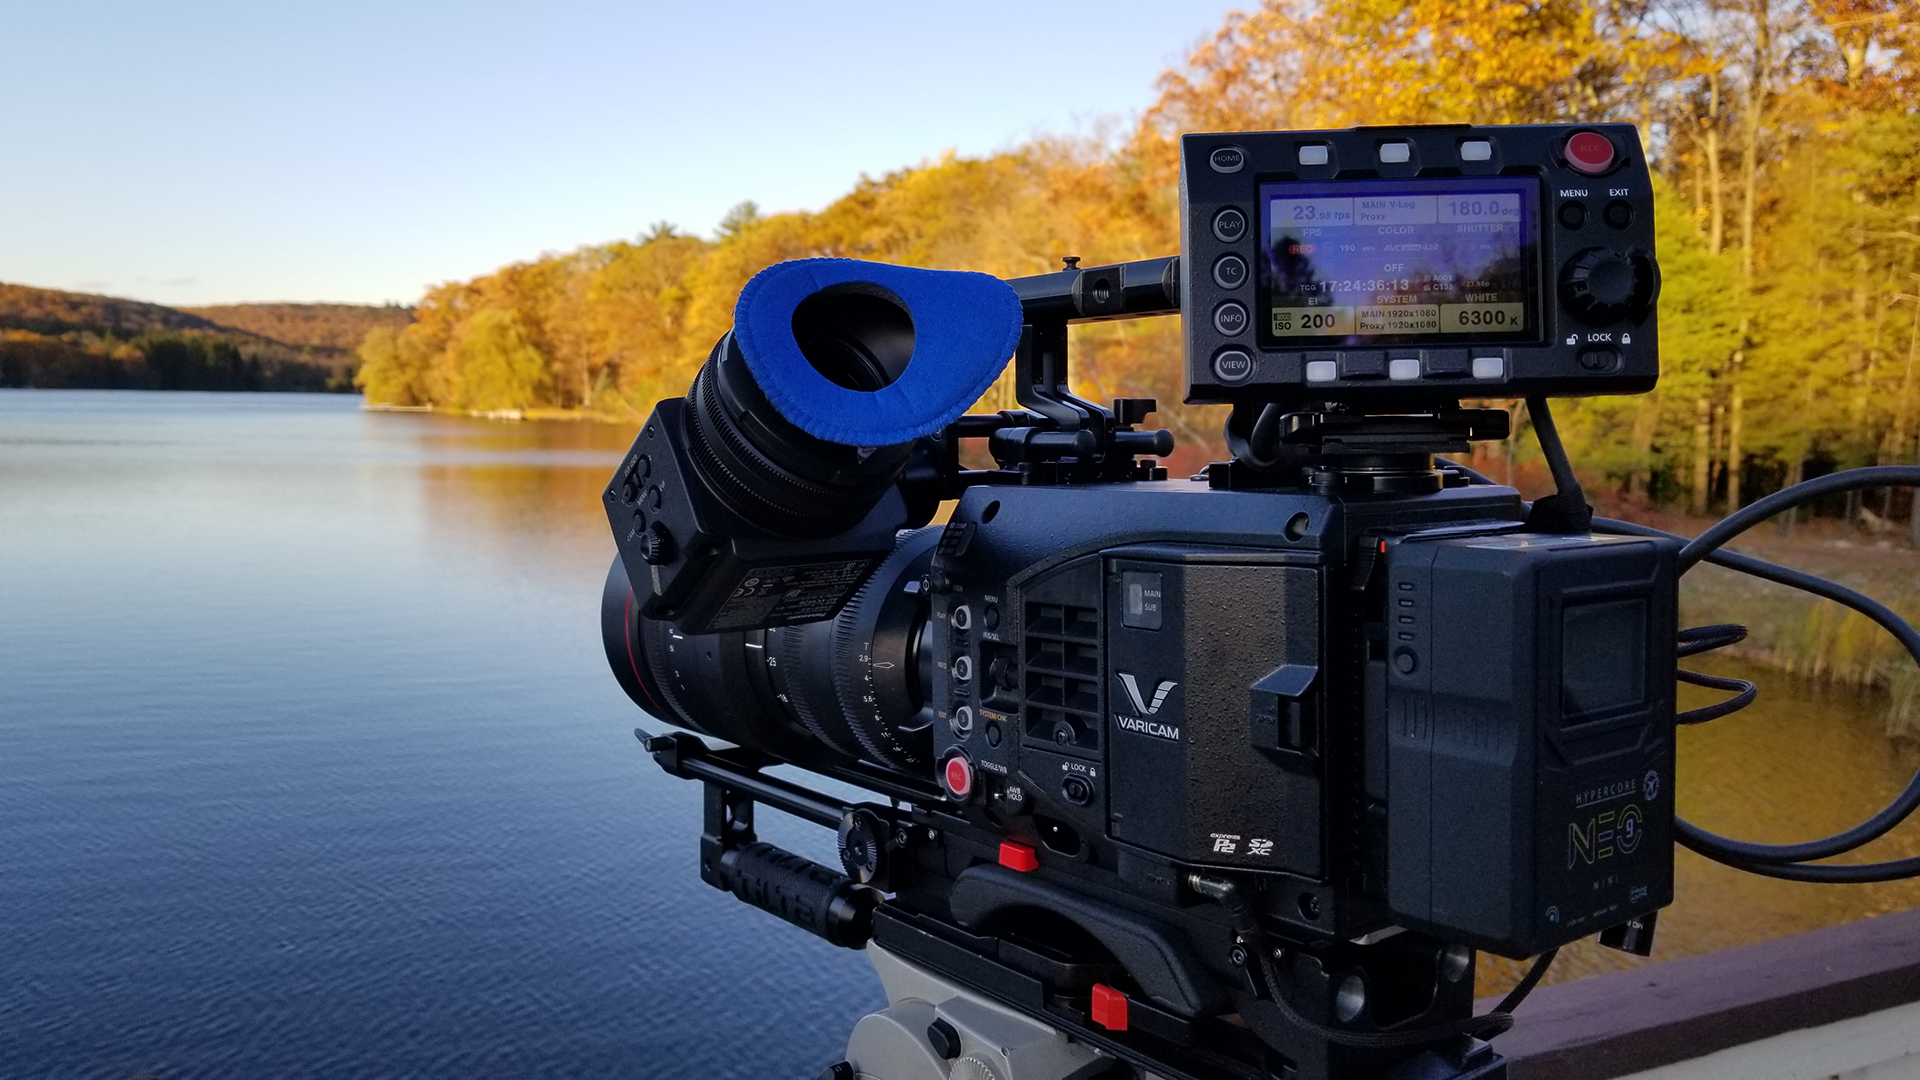 Panasonic Varicam LT with RED Pro 18 x 85 in action